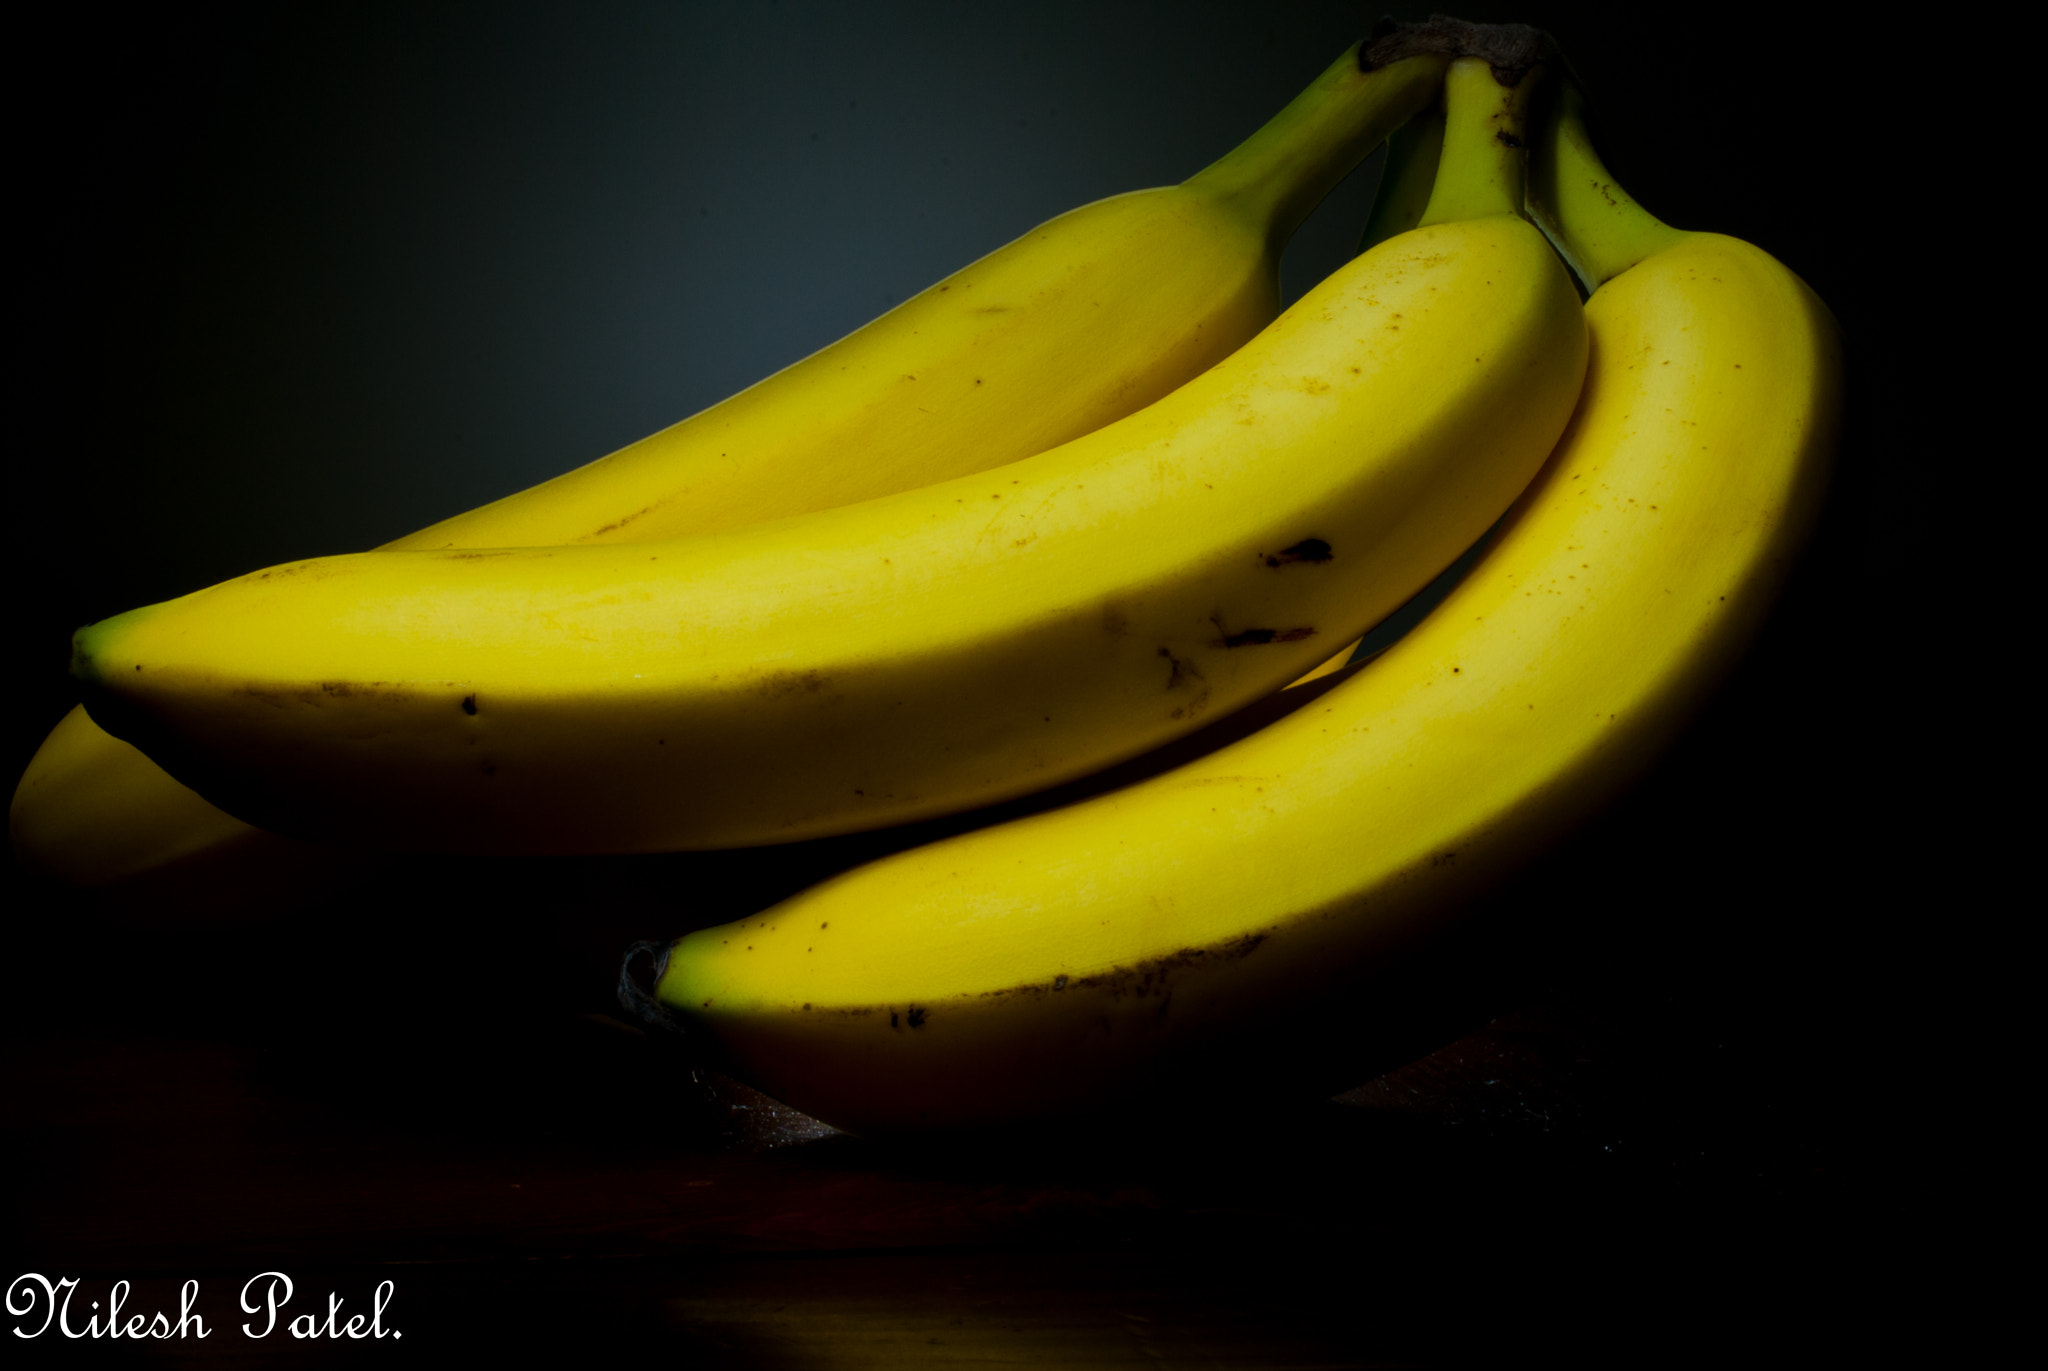 Photograph LIGHT PAINTING ON BANANA. by Nilesh Patel on 500px